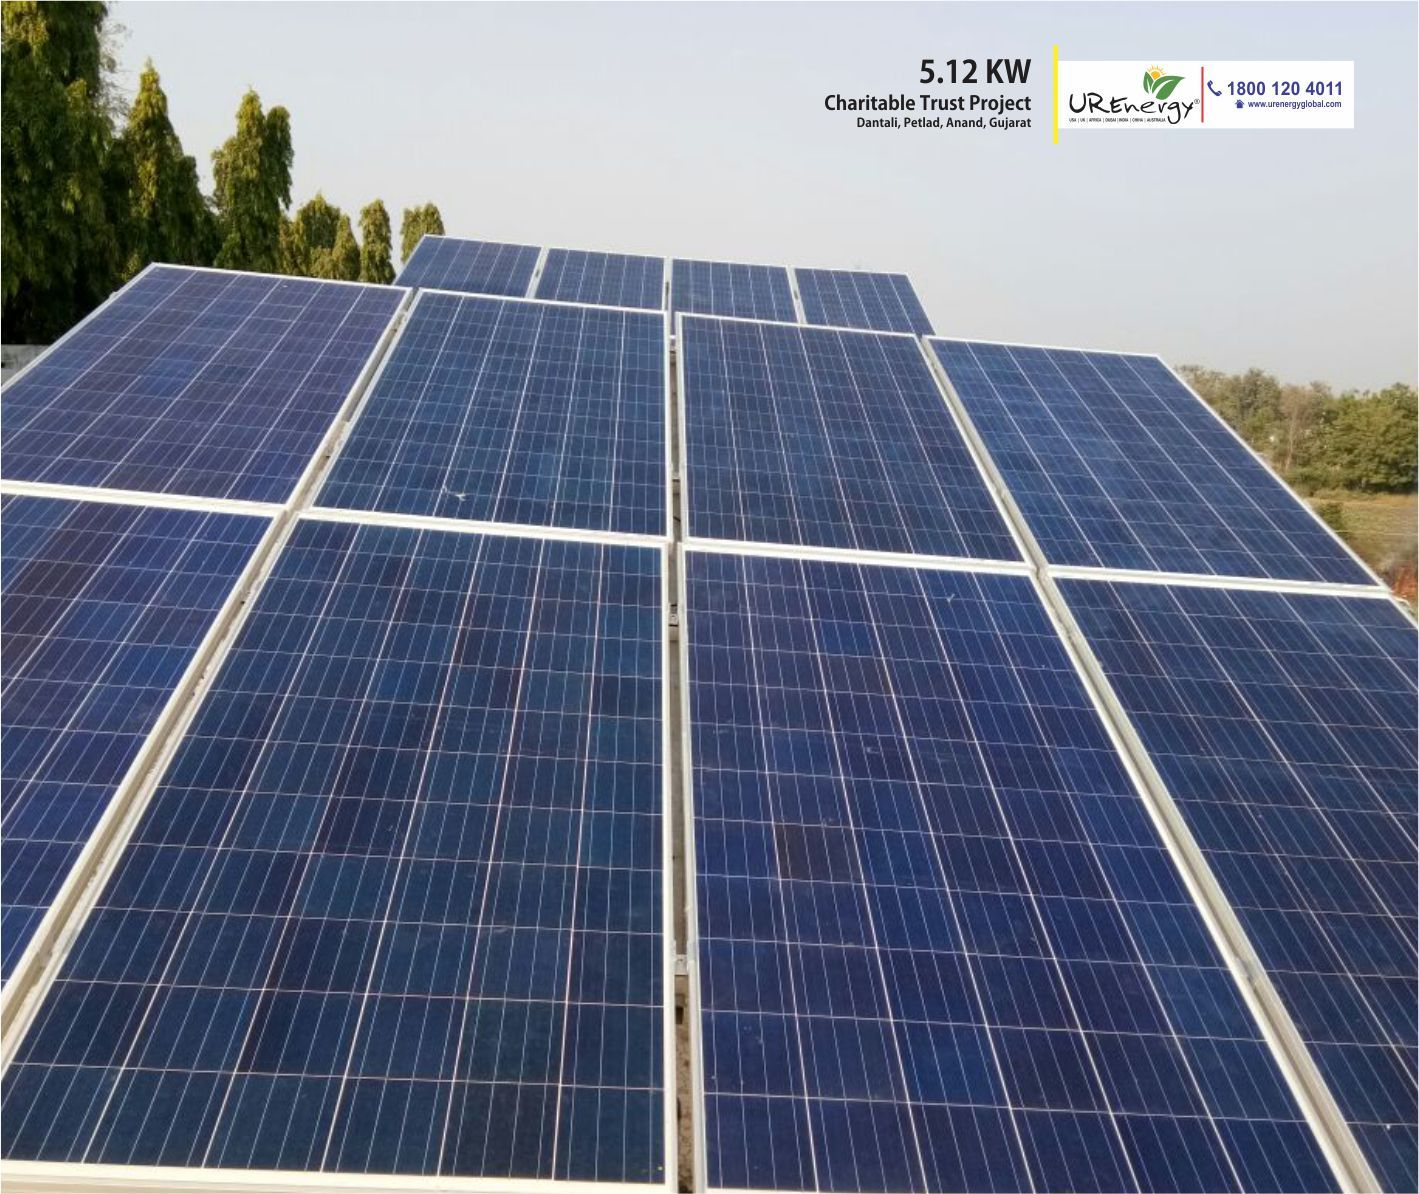 Rooftop Solar Panel Inverters Water Pump Solar Epc Gujarat India U R Energy Solar Solar Panel Inverter Solar Panels